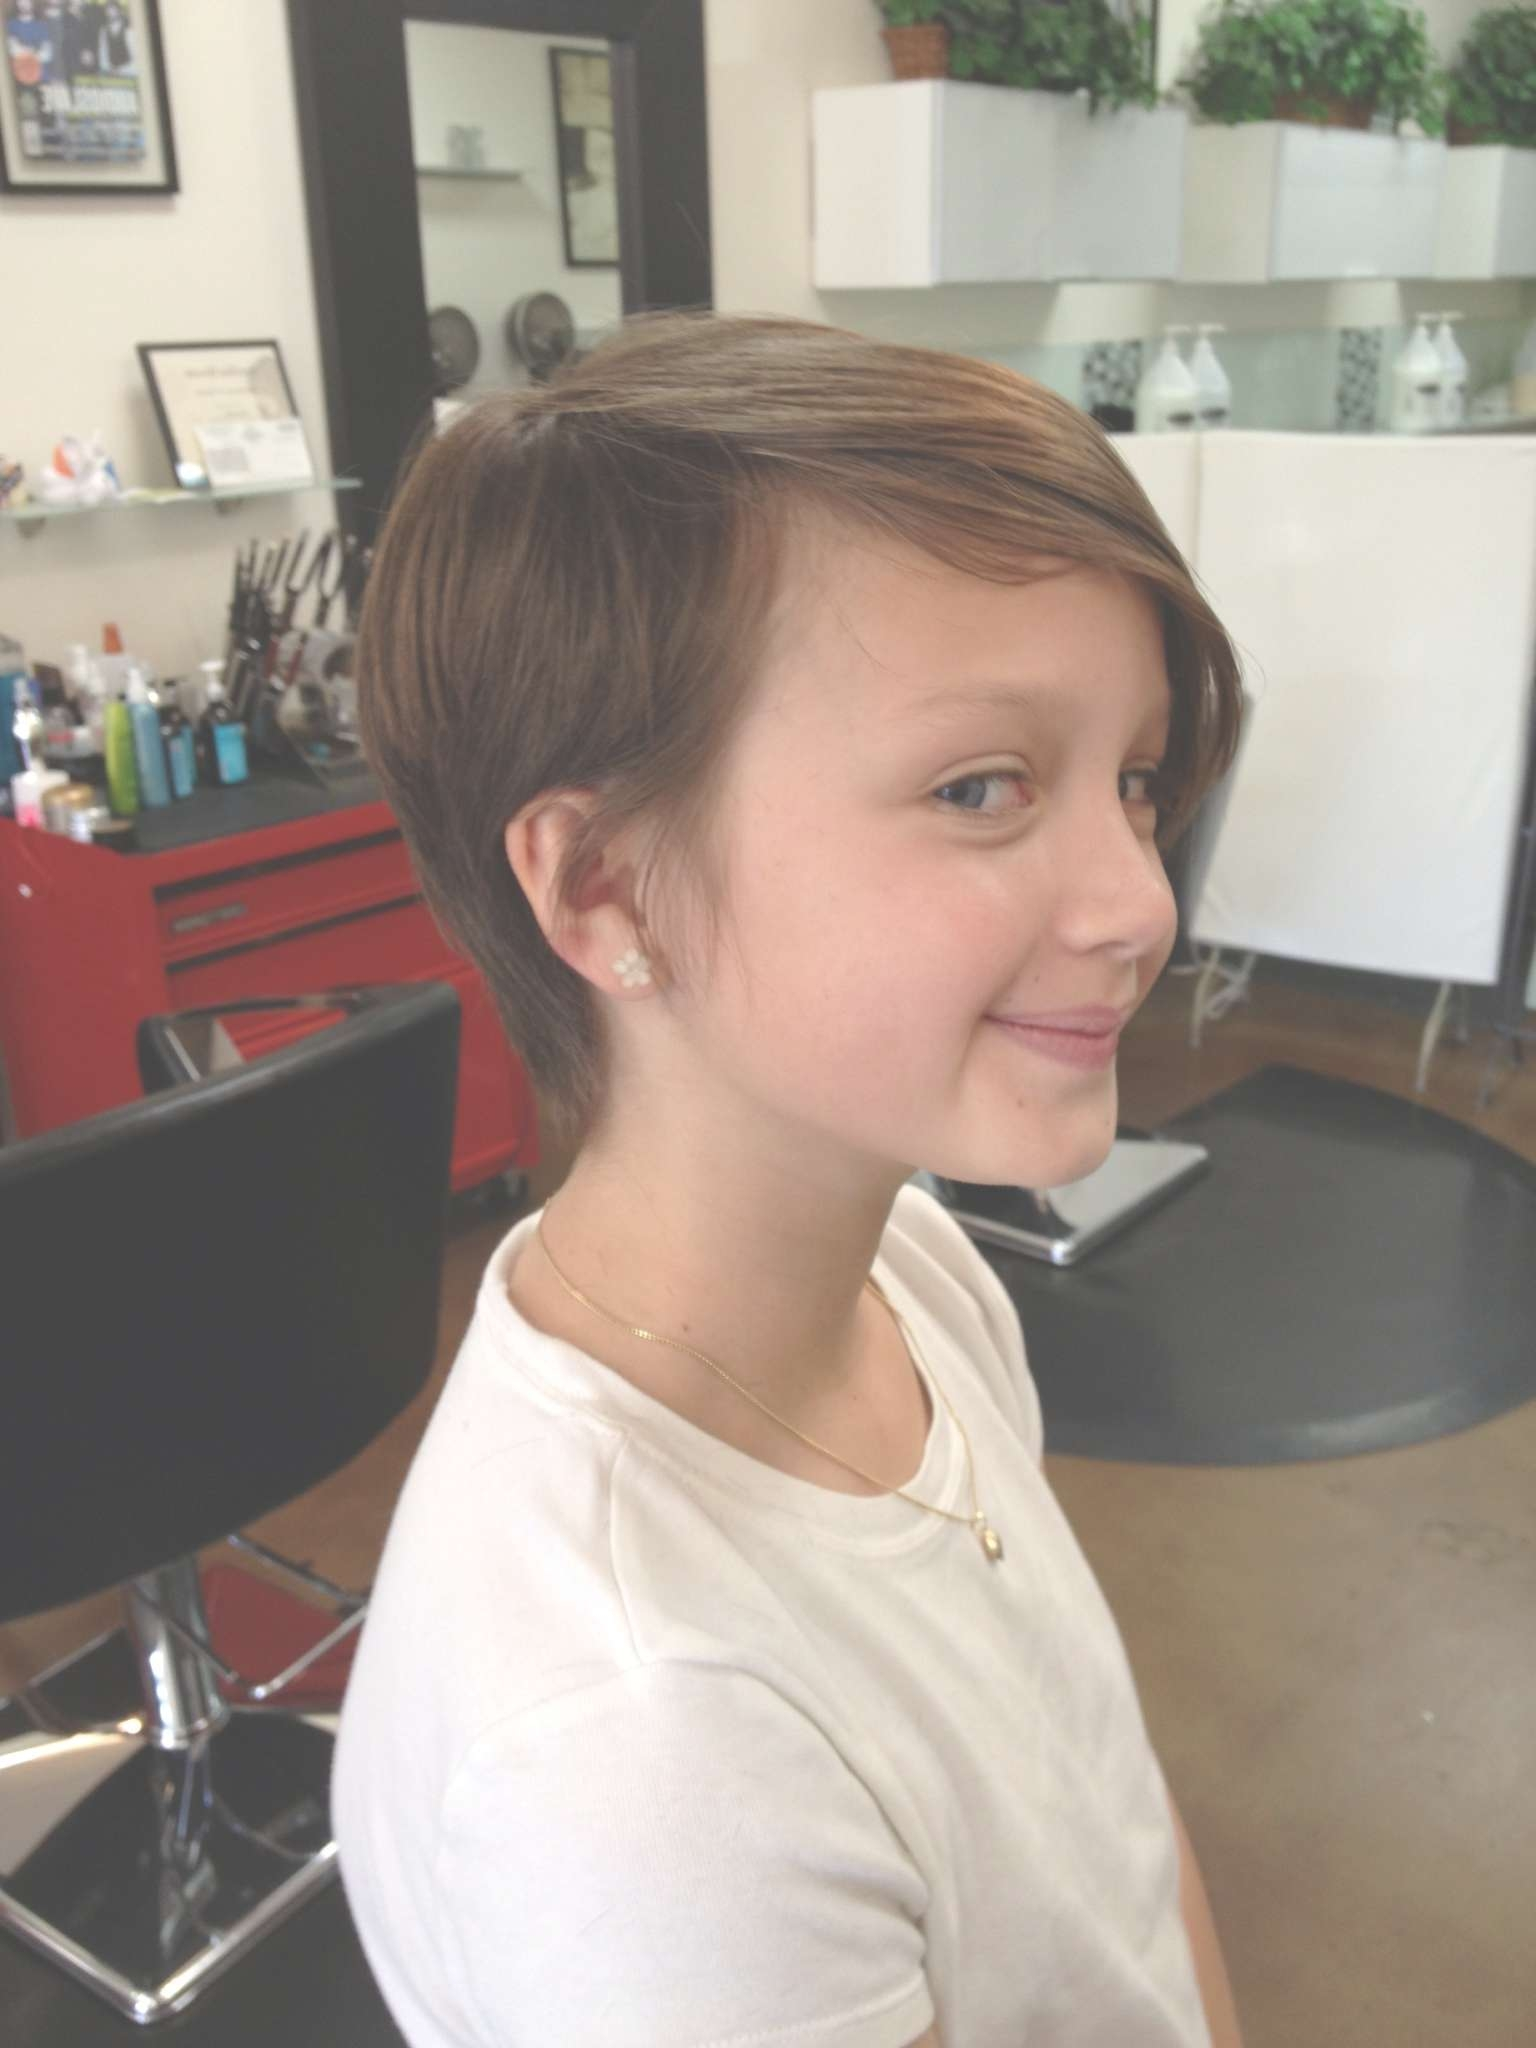 Cool Pixie Cut For A Tween (View 5 of 15)